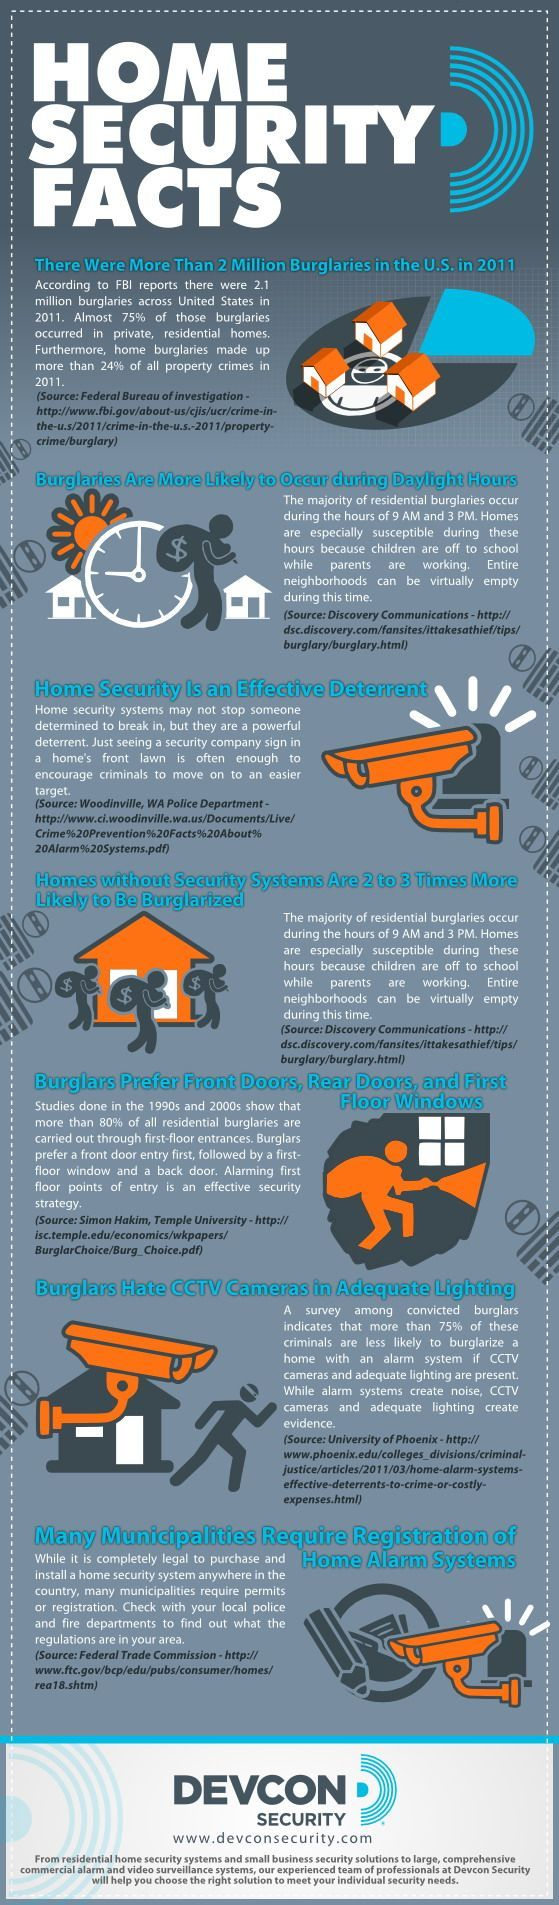 Home Security Facts Infographic. www.toplocksmithservice.com